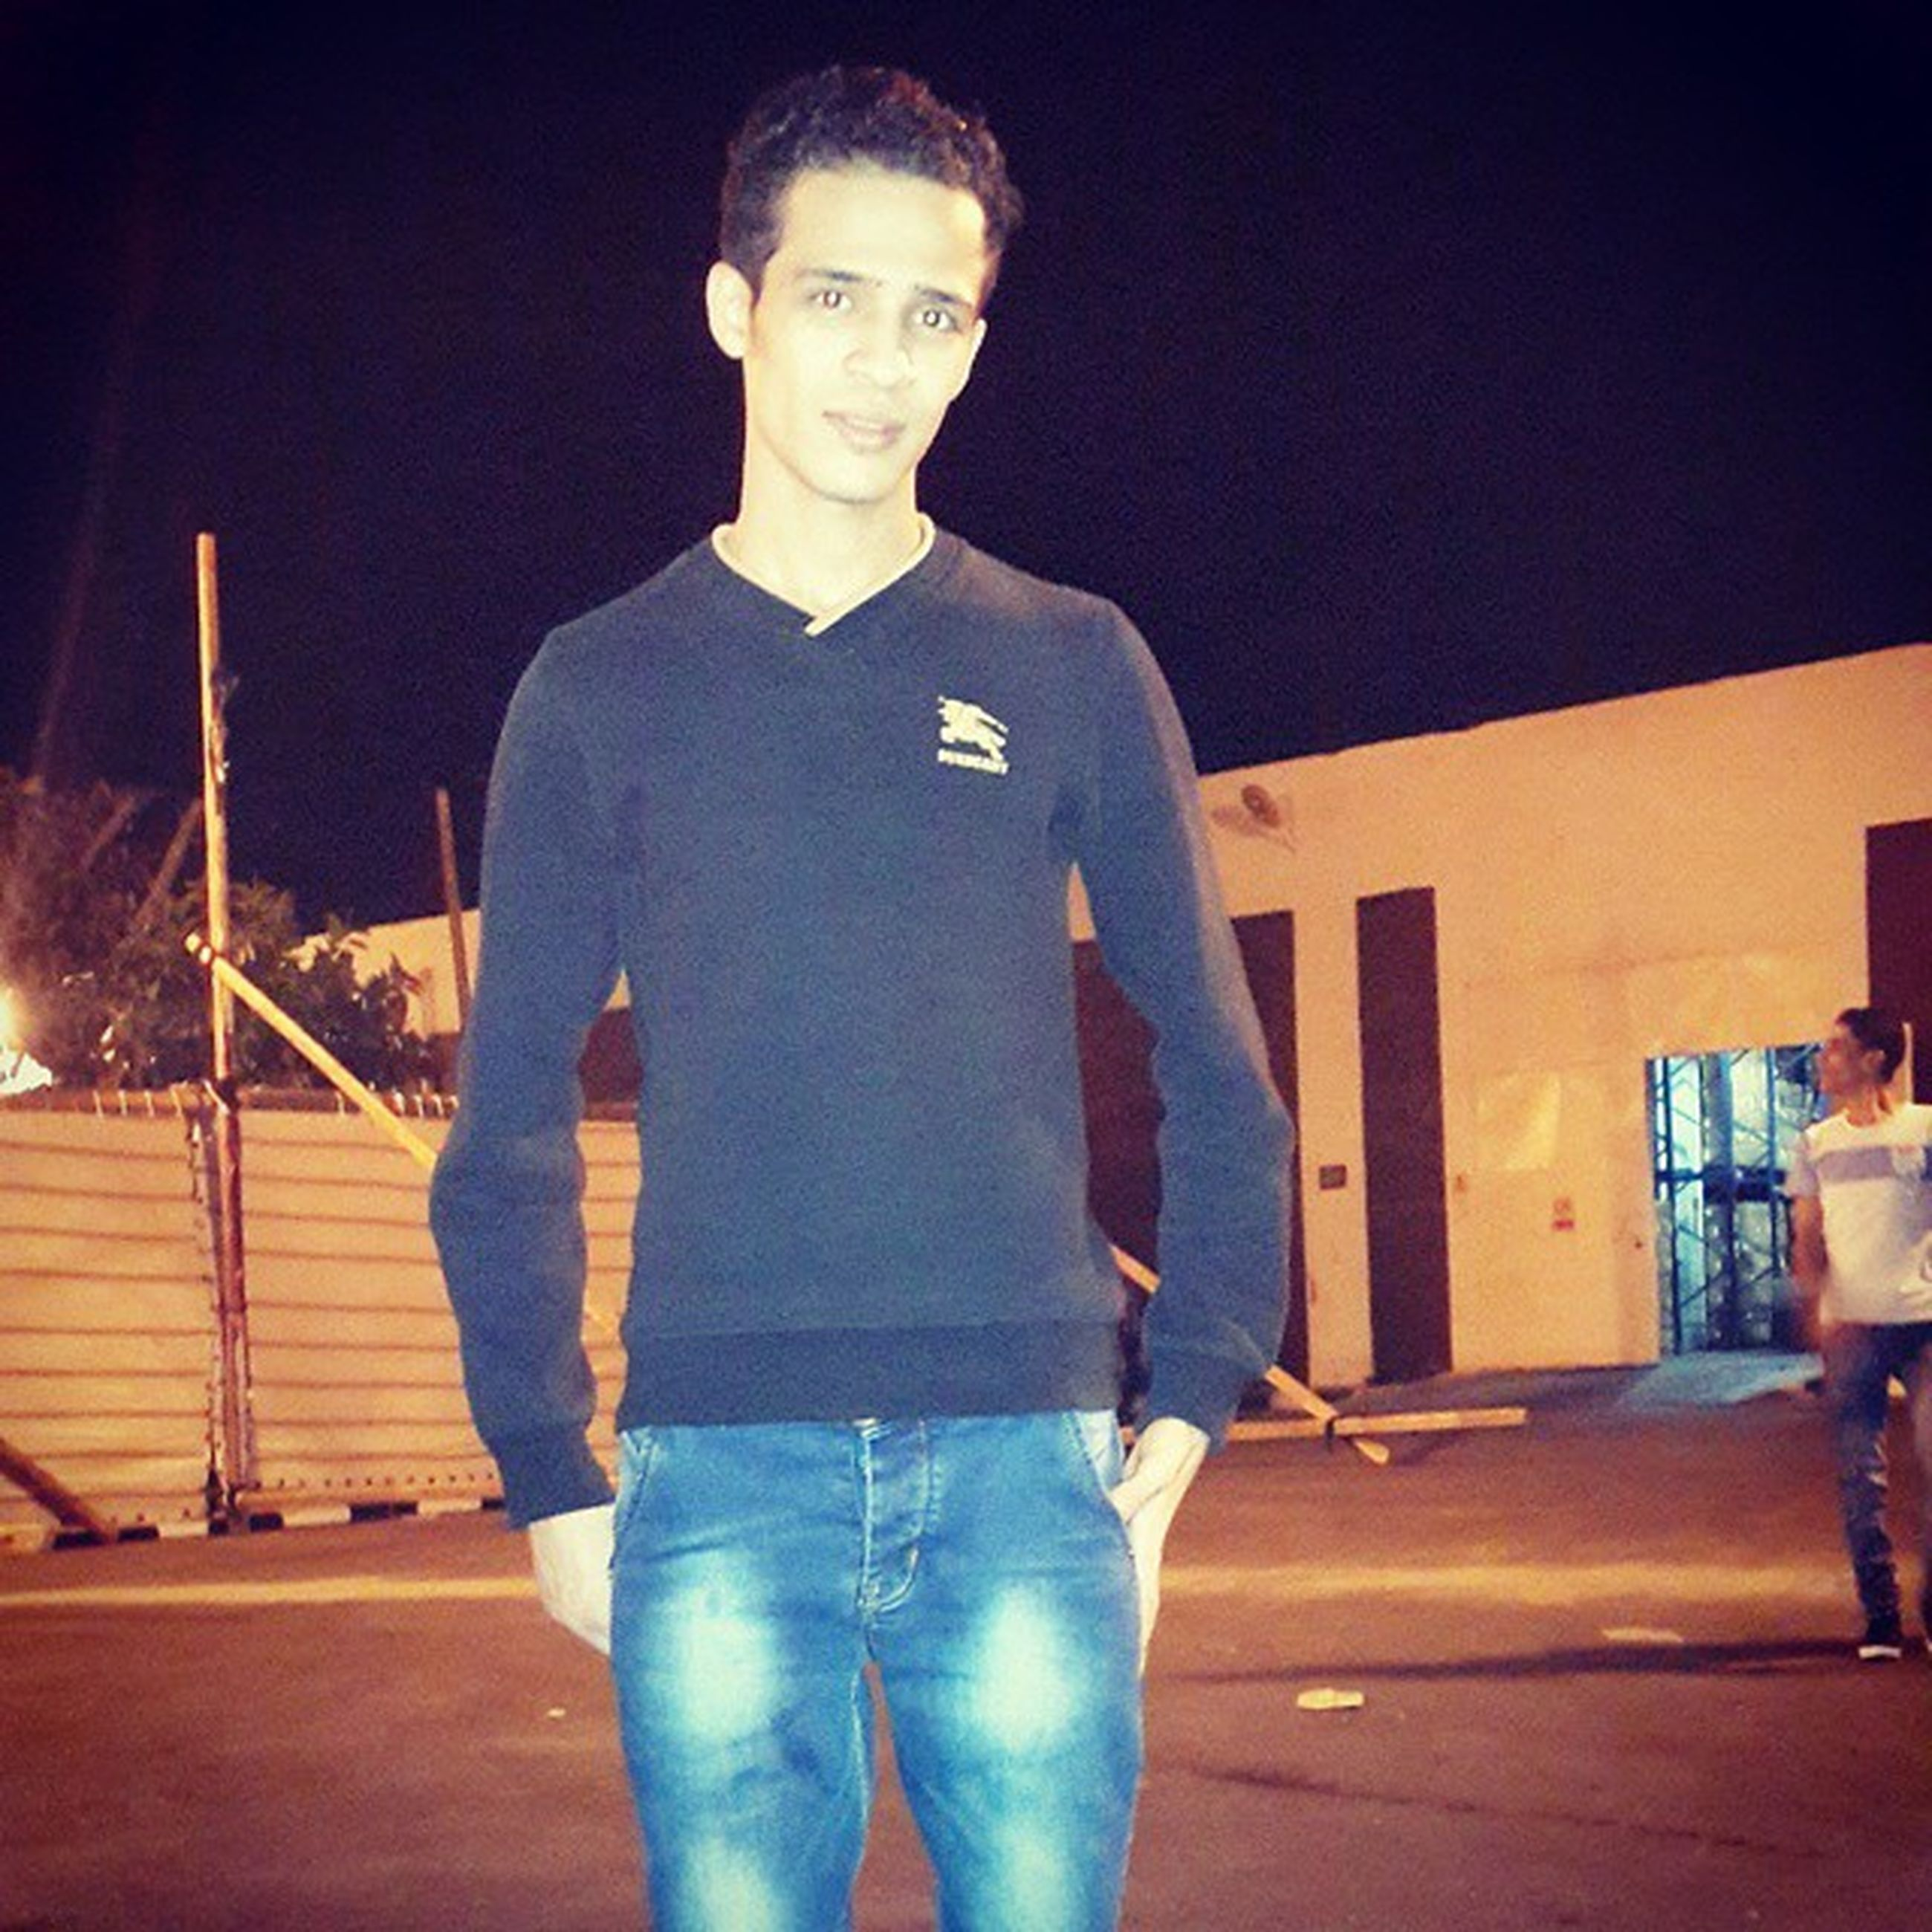 casual clothing, lifestyles, standing, young men, young adult, three quarter length, person, front view, leisure activity, full length, built structure, architecture, night, building exterior, looking at camera, portrait, communication, wall - building feature